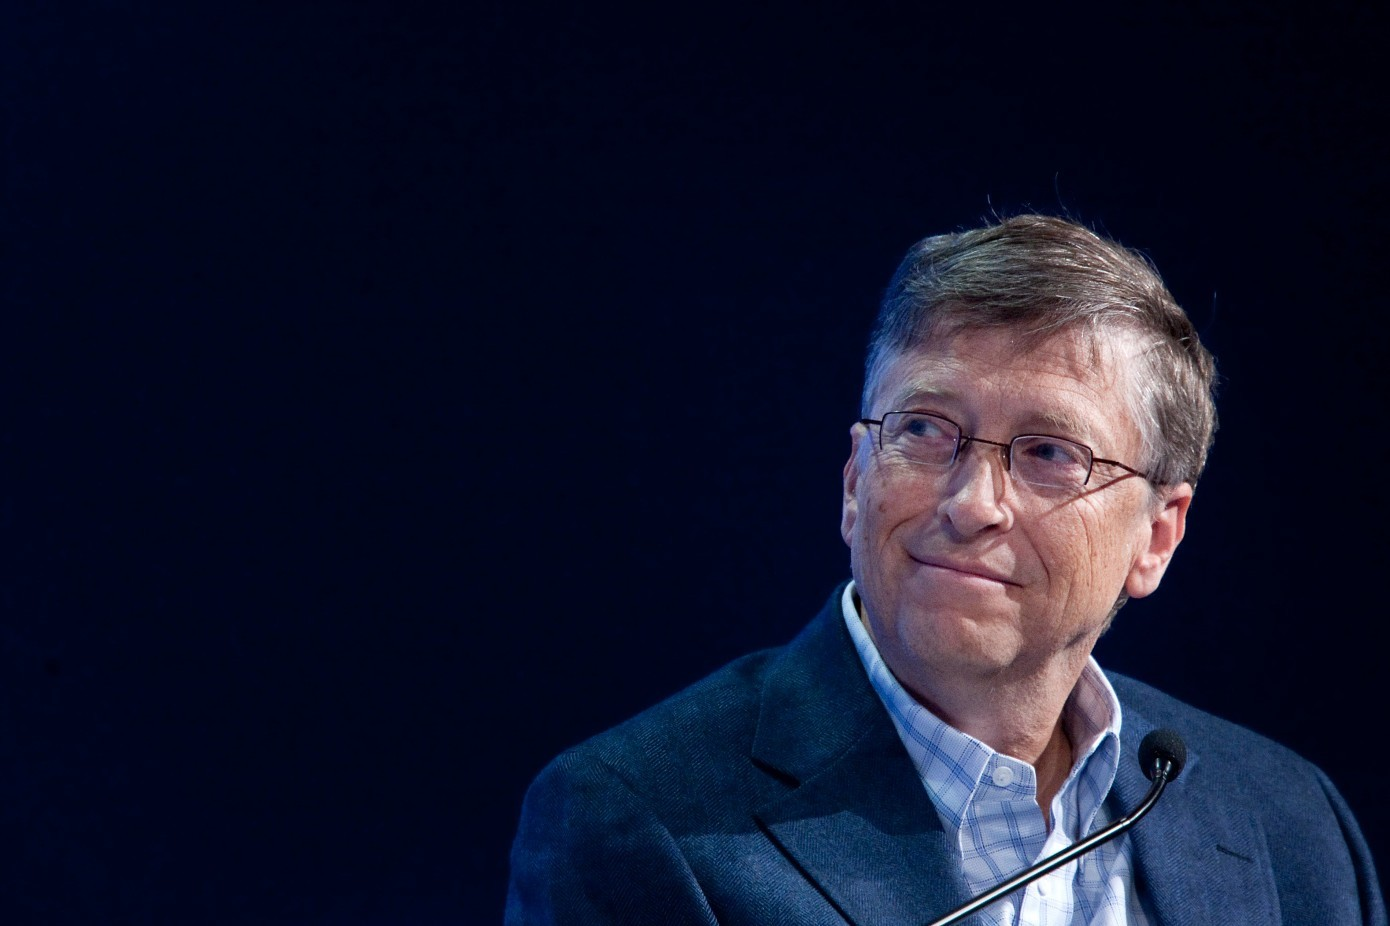 Bill Gates is leaving Microsoft and also Berkshire Hathaway's boards